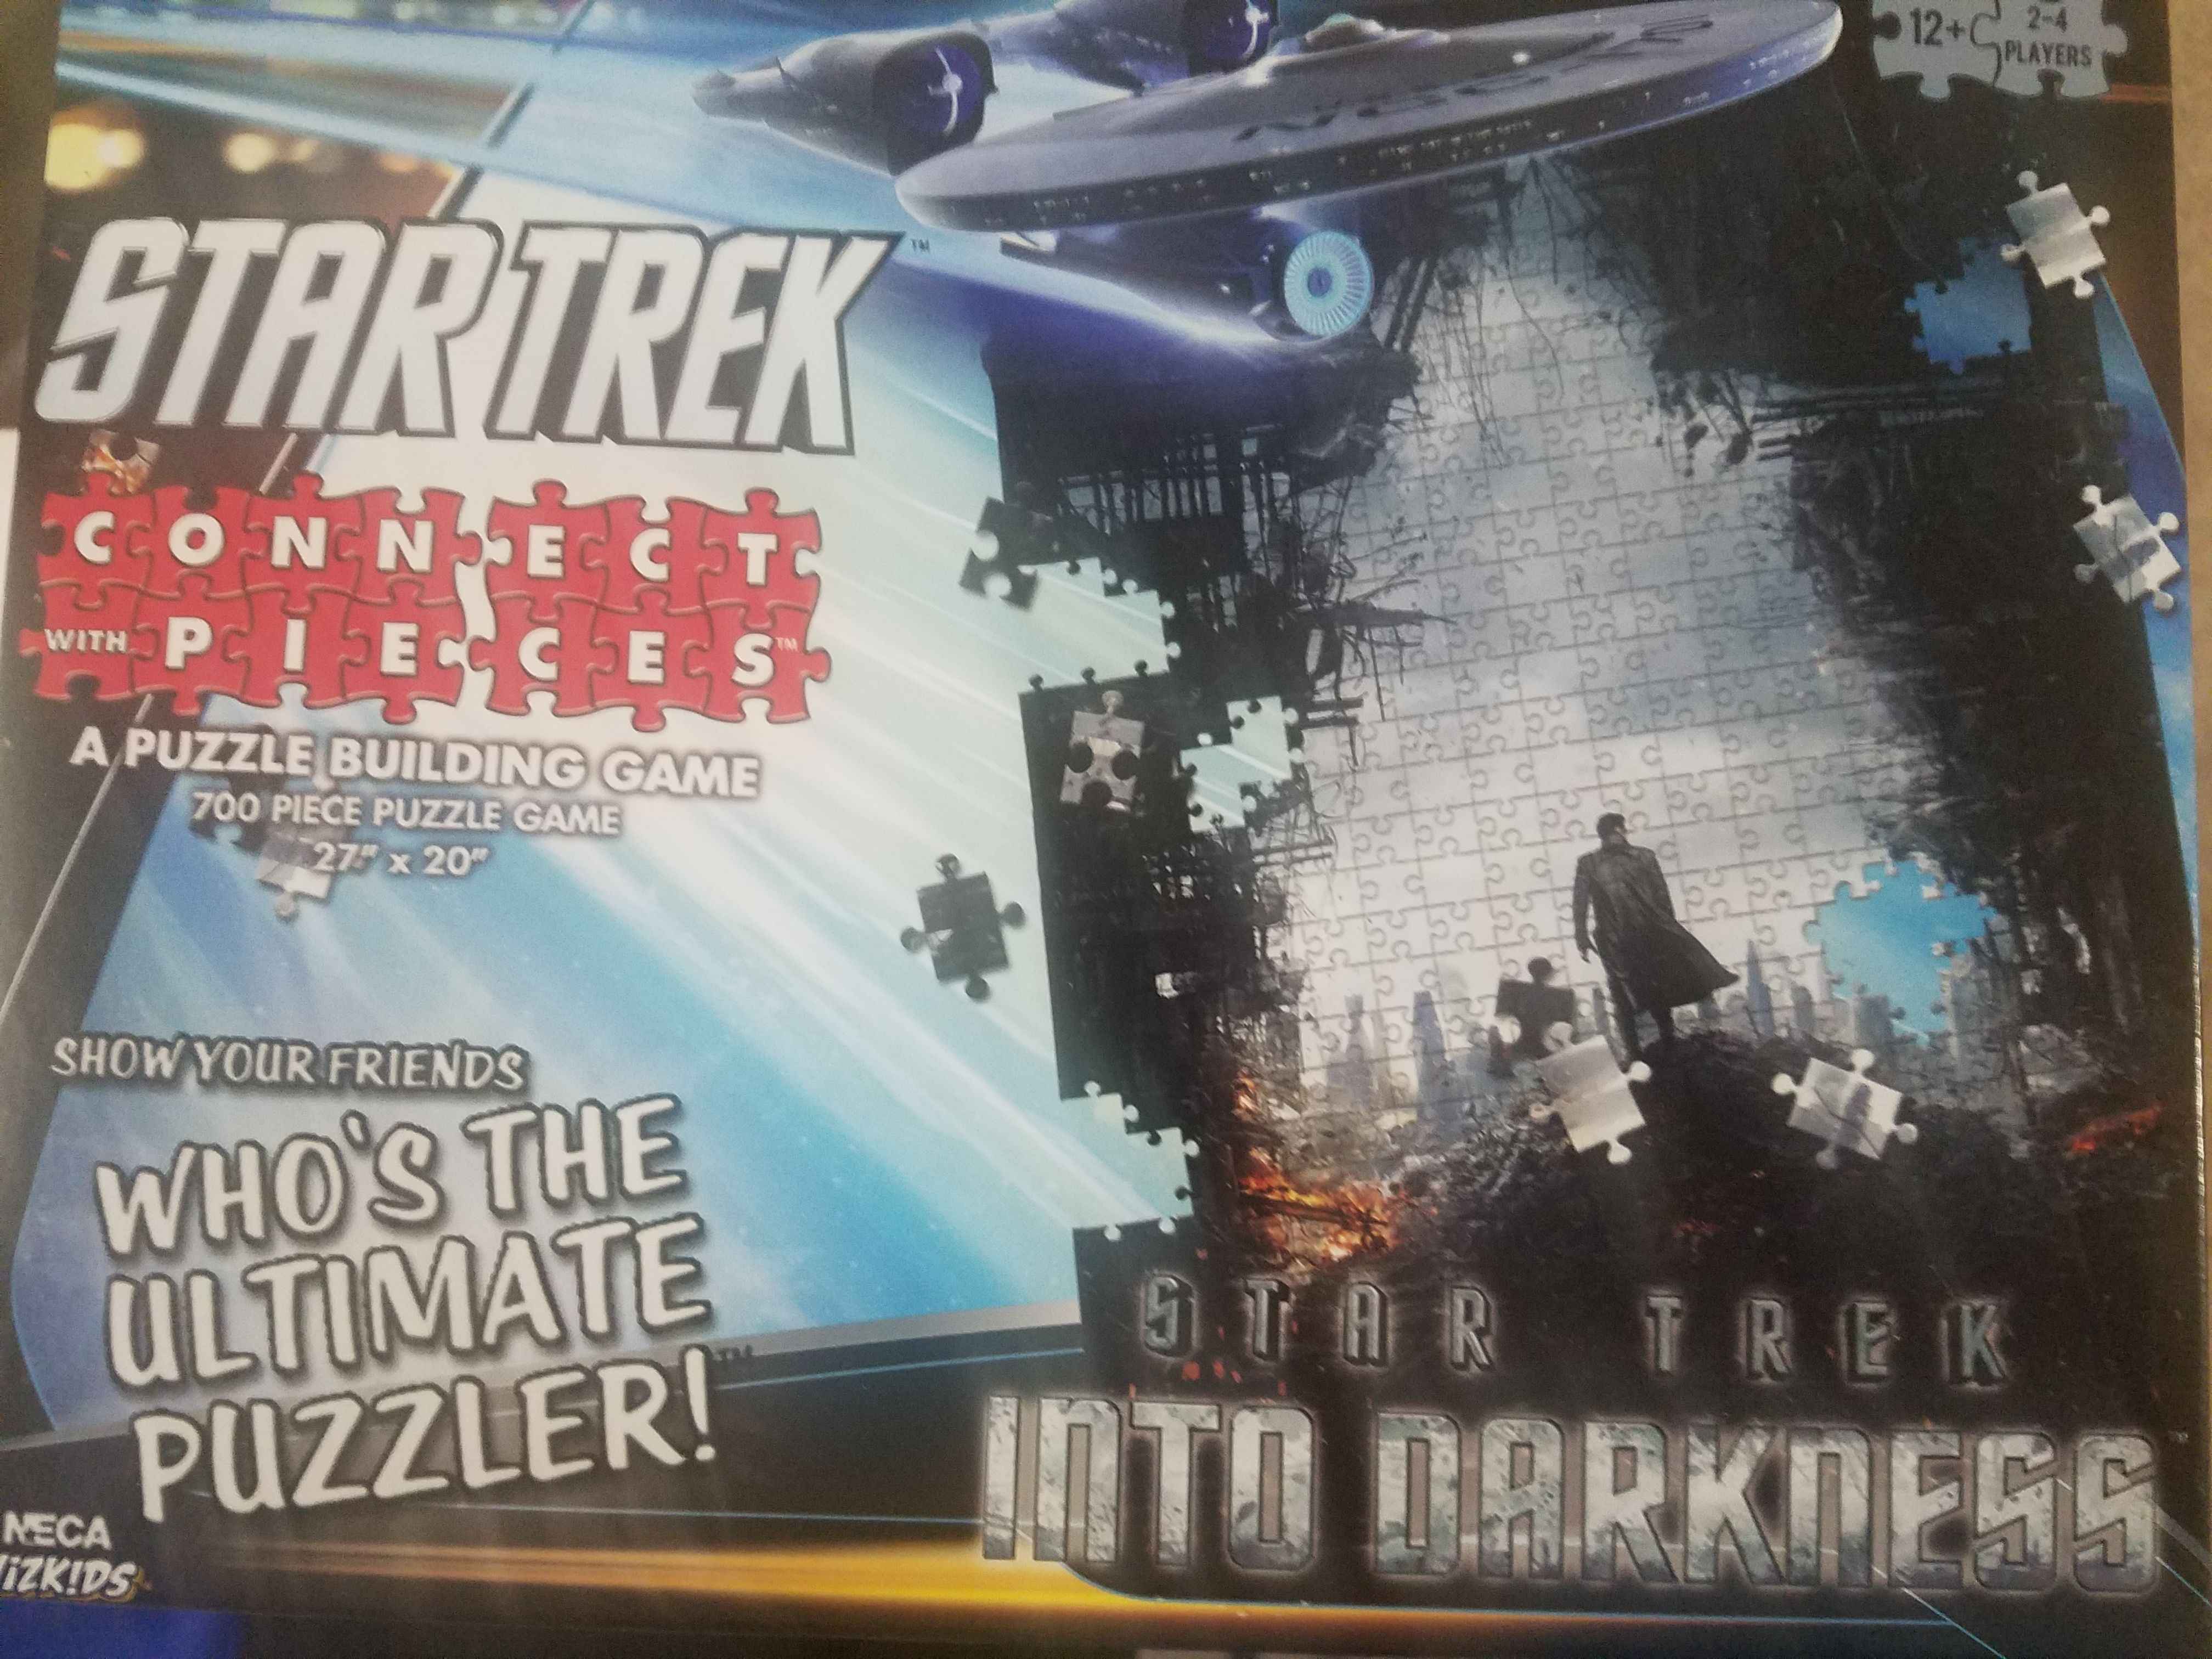 Connect with Pieces: Star Trek Into Darkness